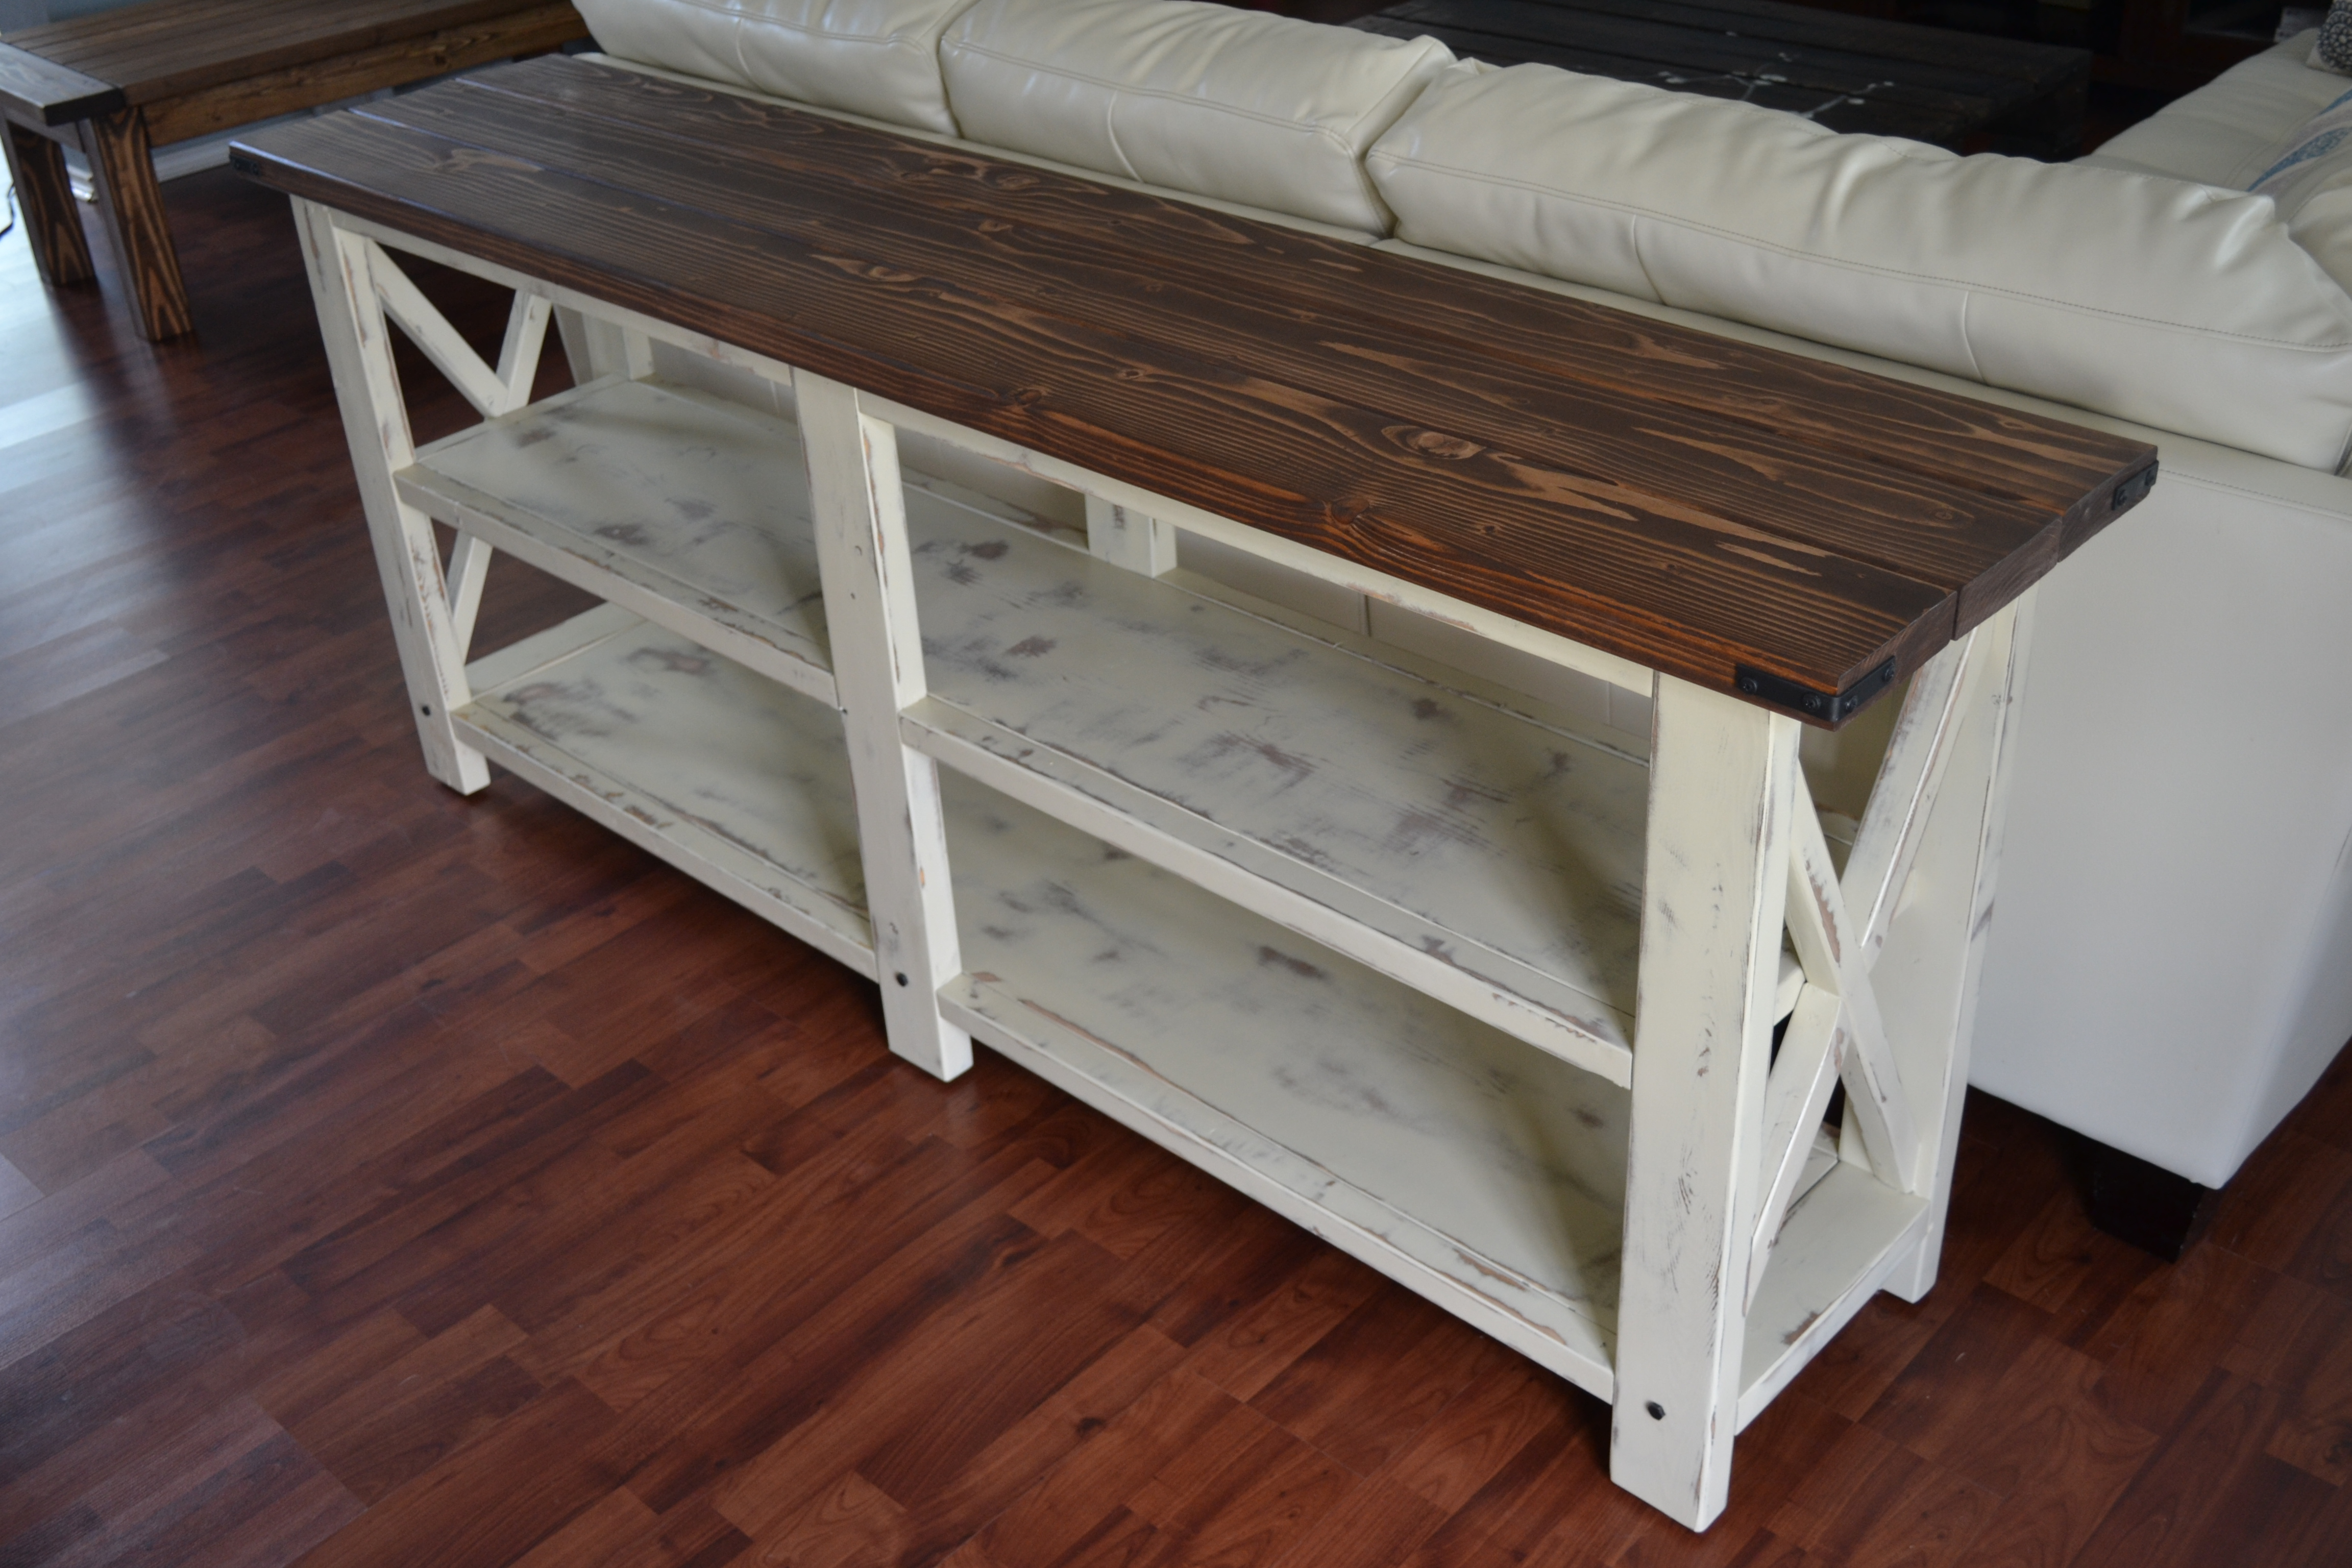 Ana White Sofa Table Ana White Rustic X Console Diy Projects  TheSofa